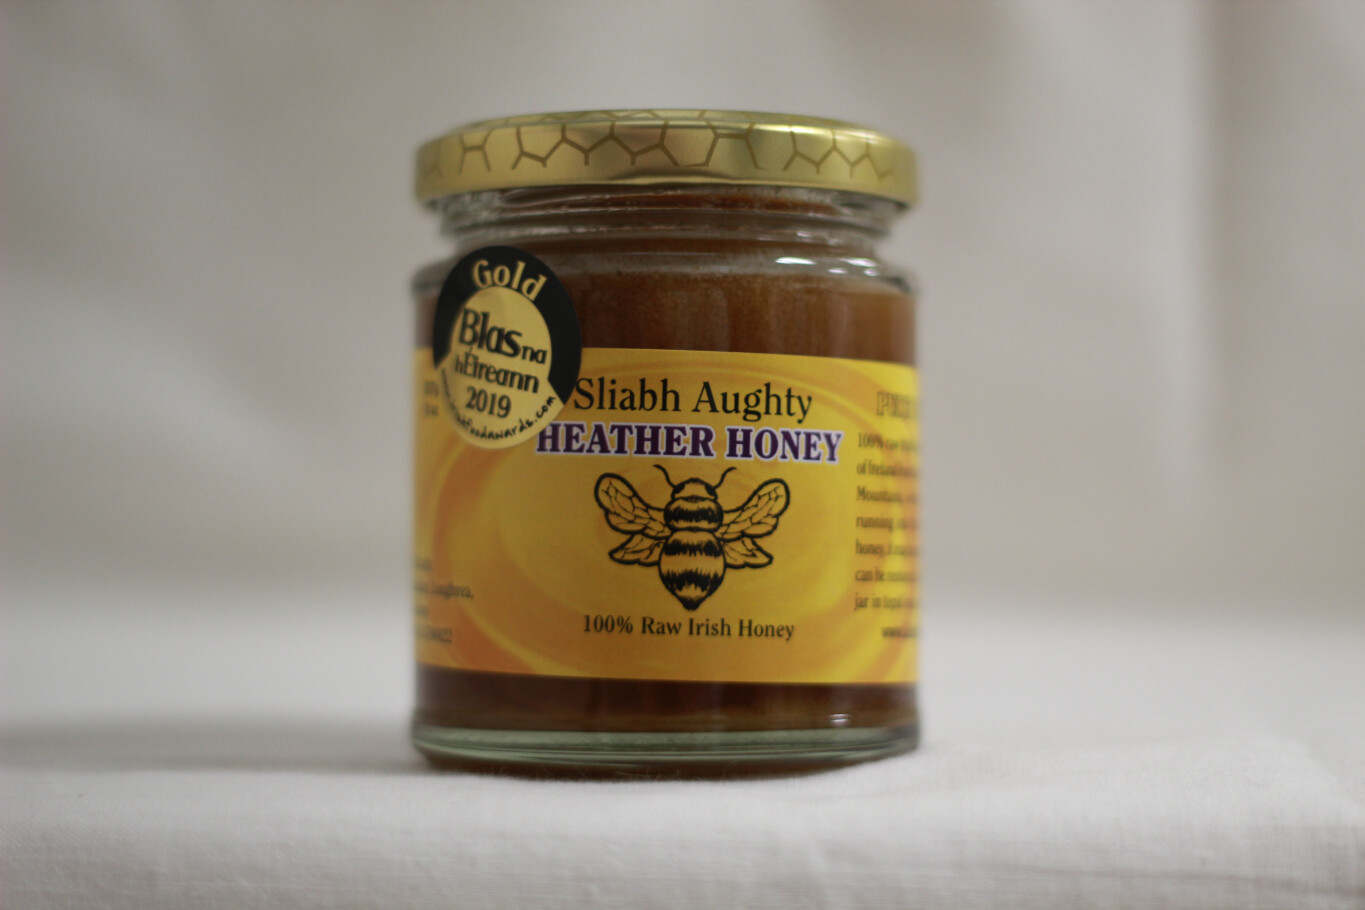 Sliabh Aughty Heather Honey